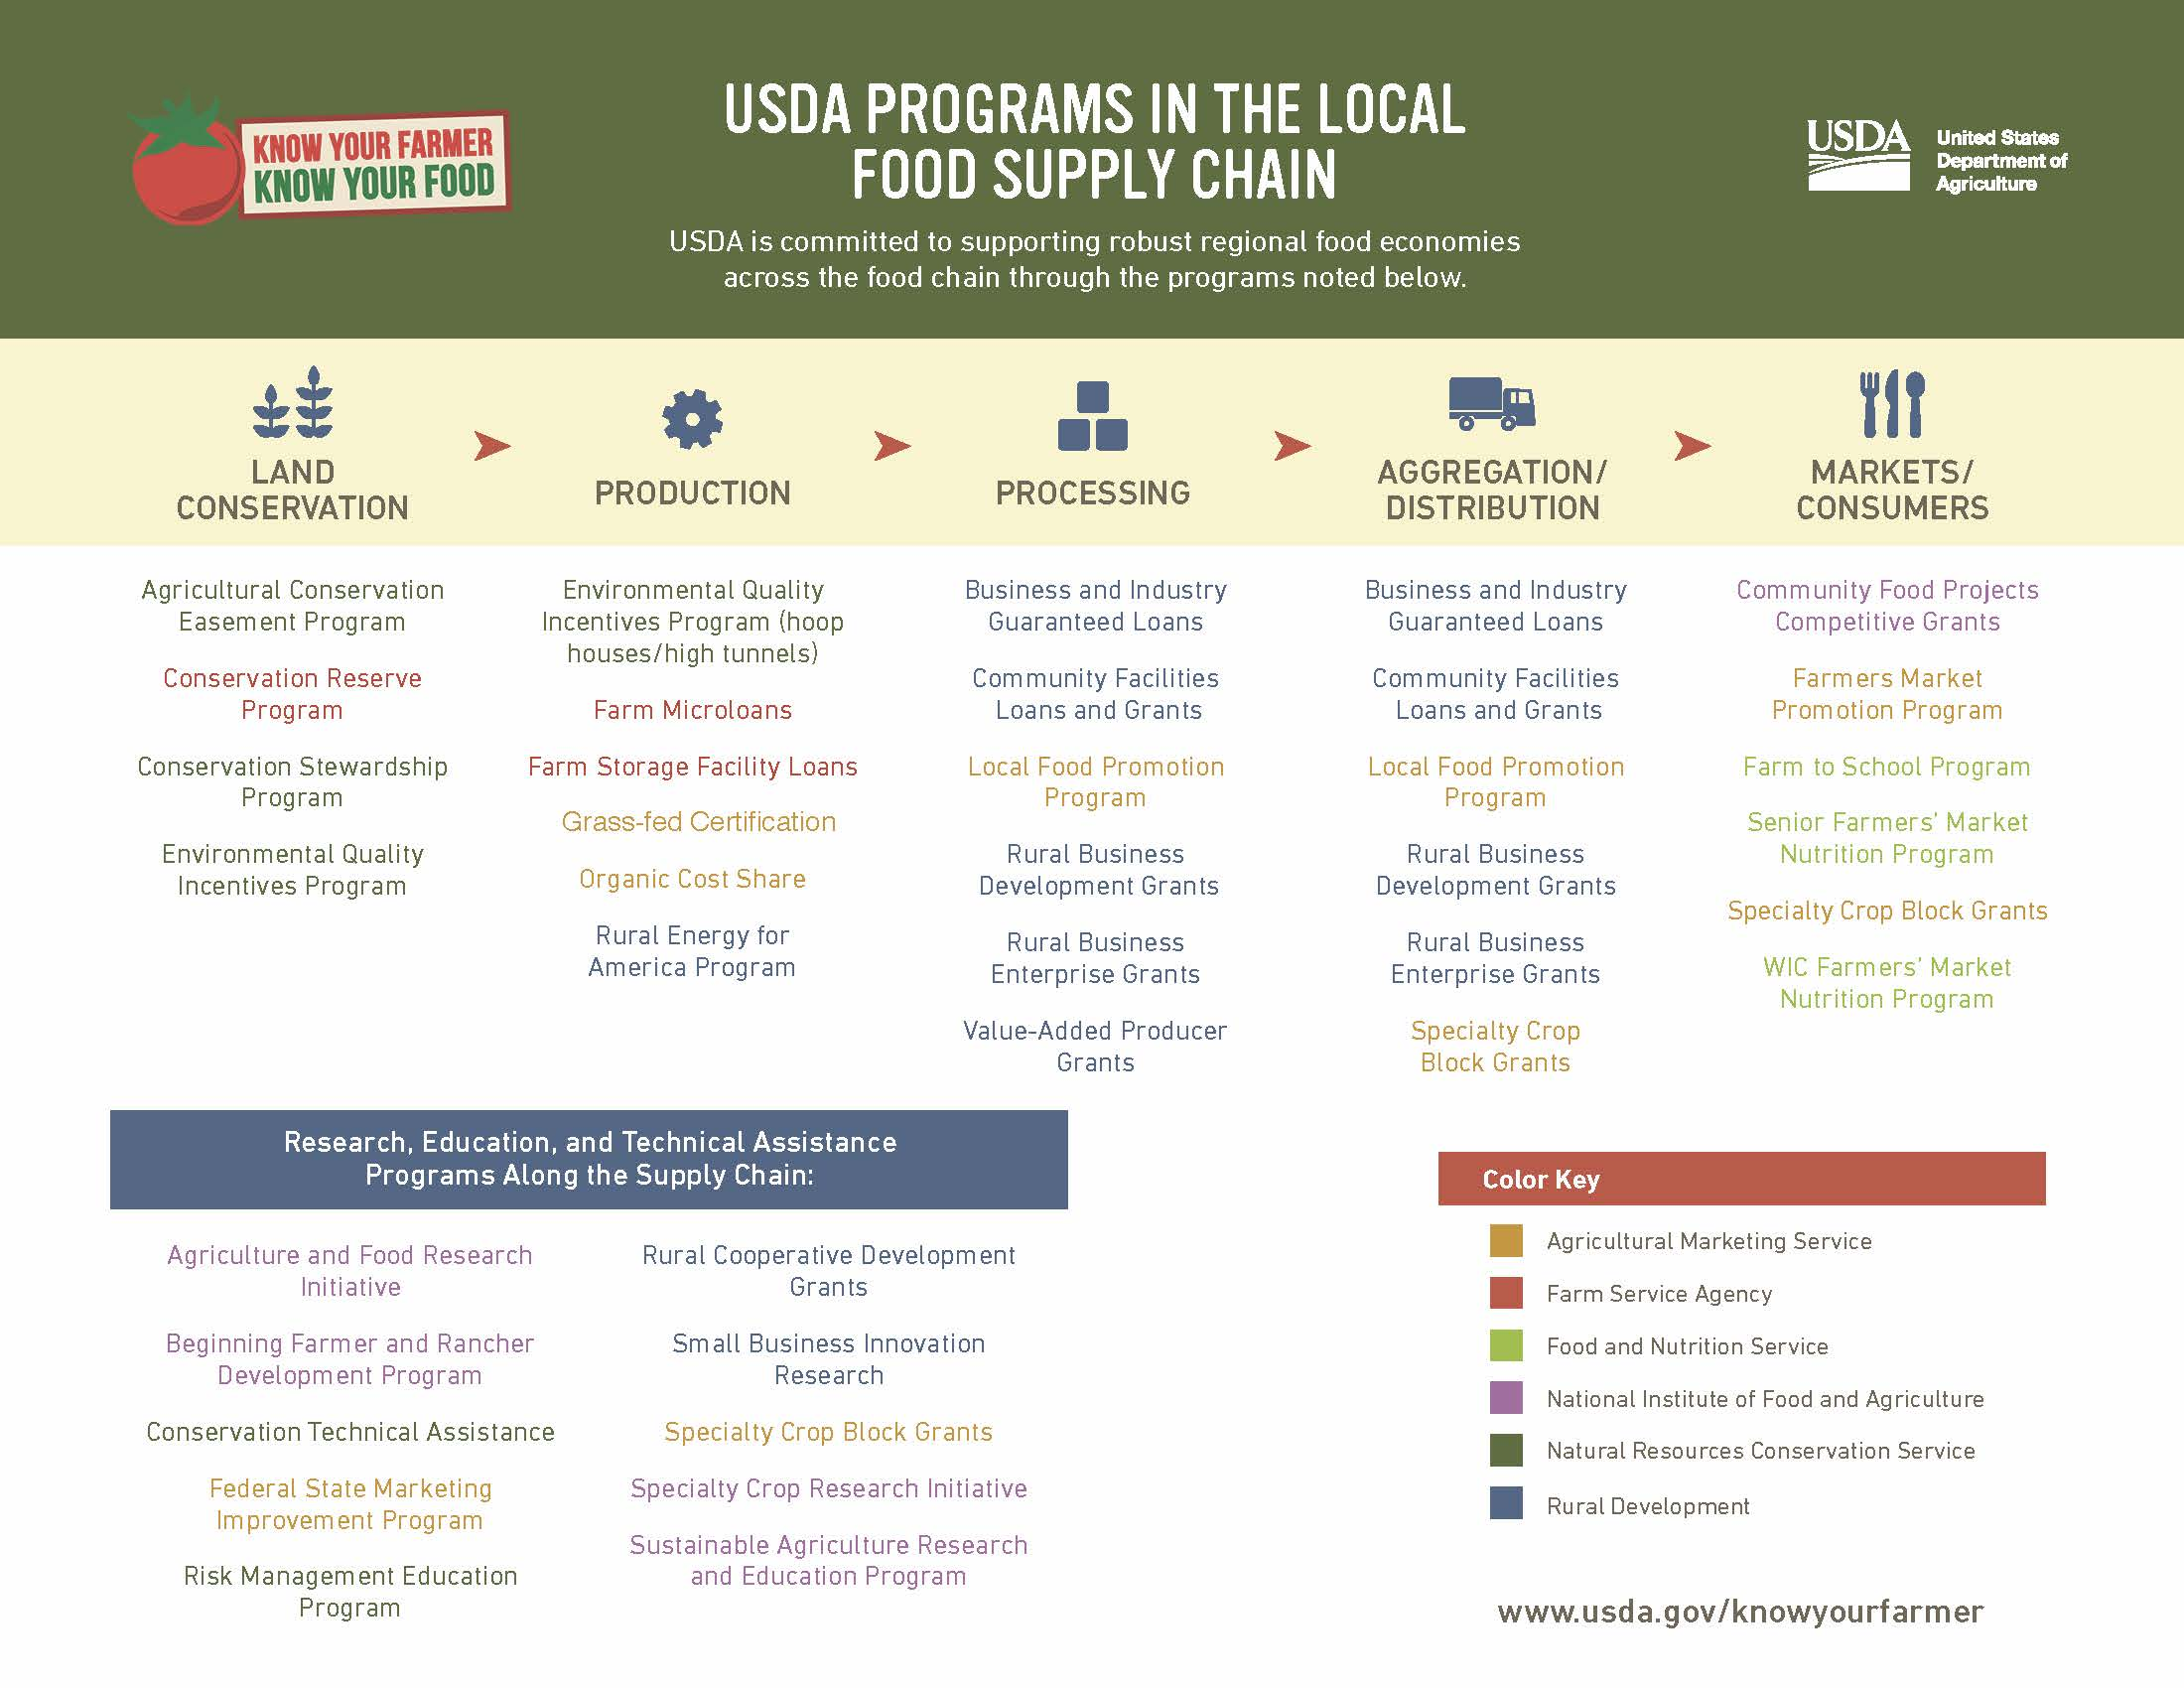 USDA Grant and Loan Programs in support of Local Food System Development.